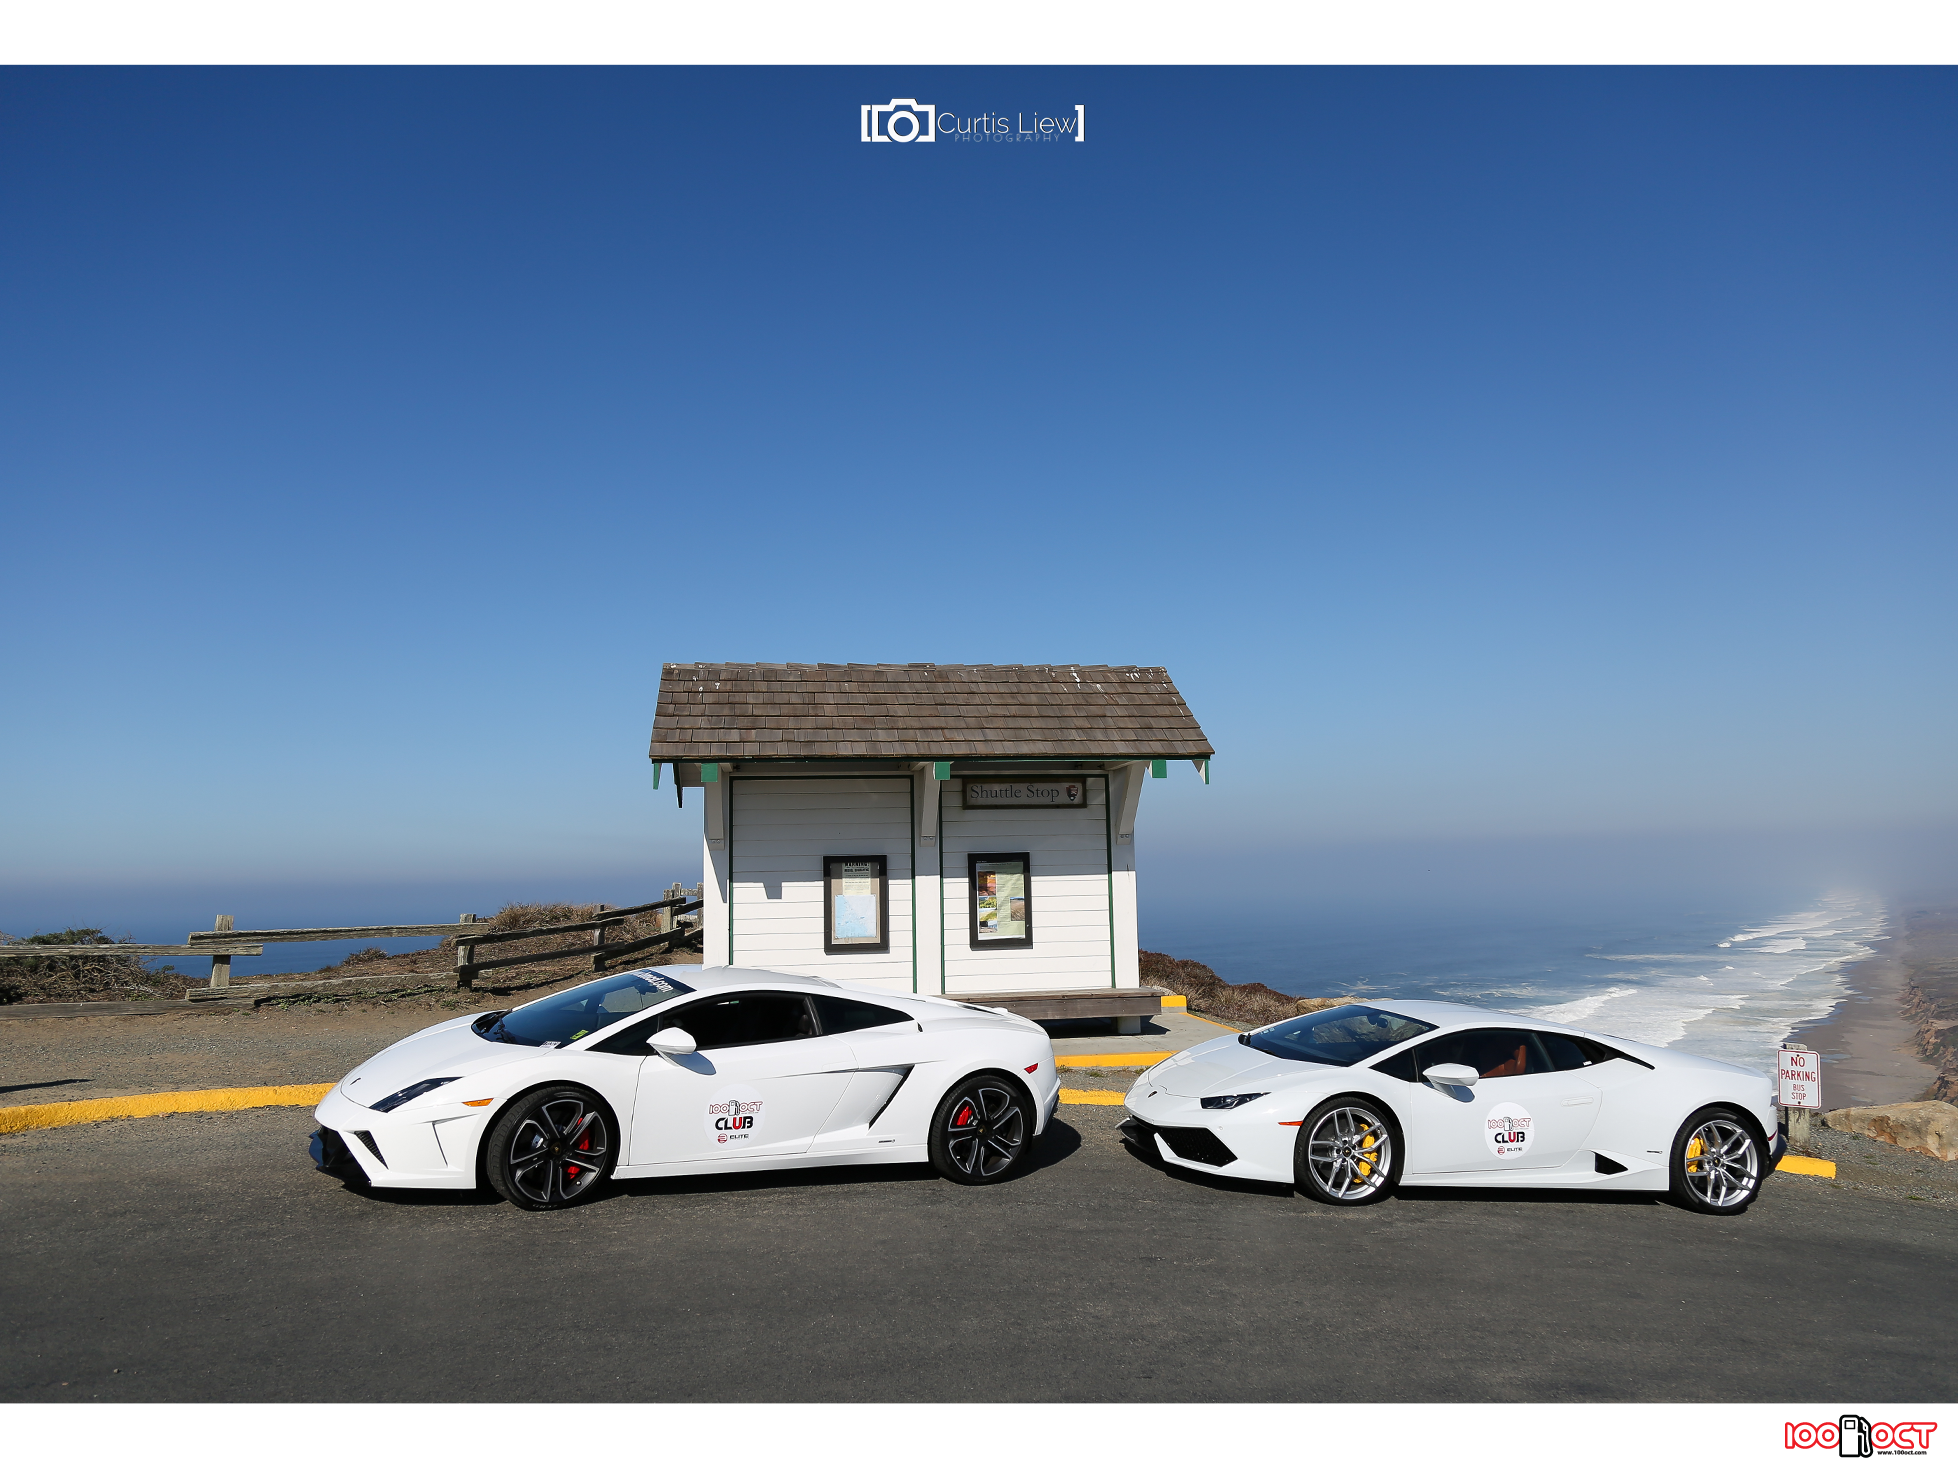 Lamborghini V10 siblings at the end of the world! Credits: Curtis Liew